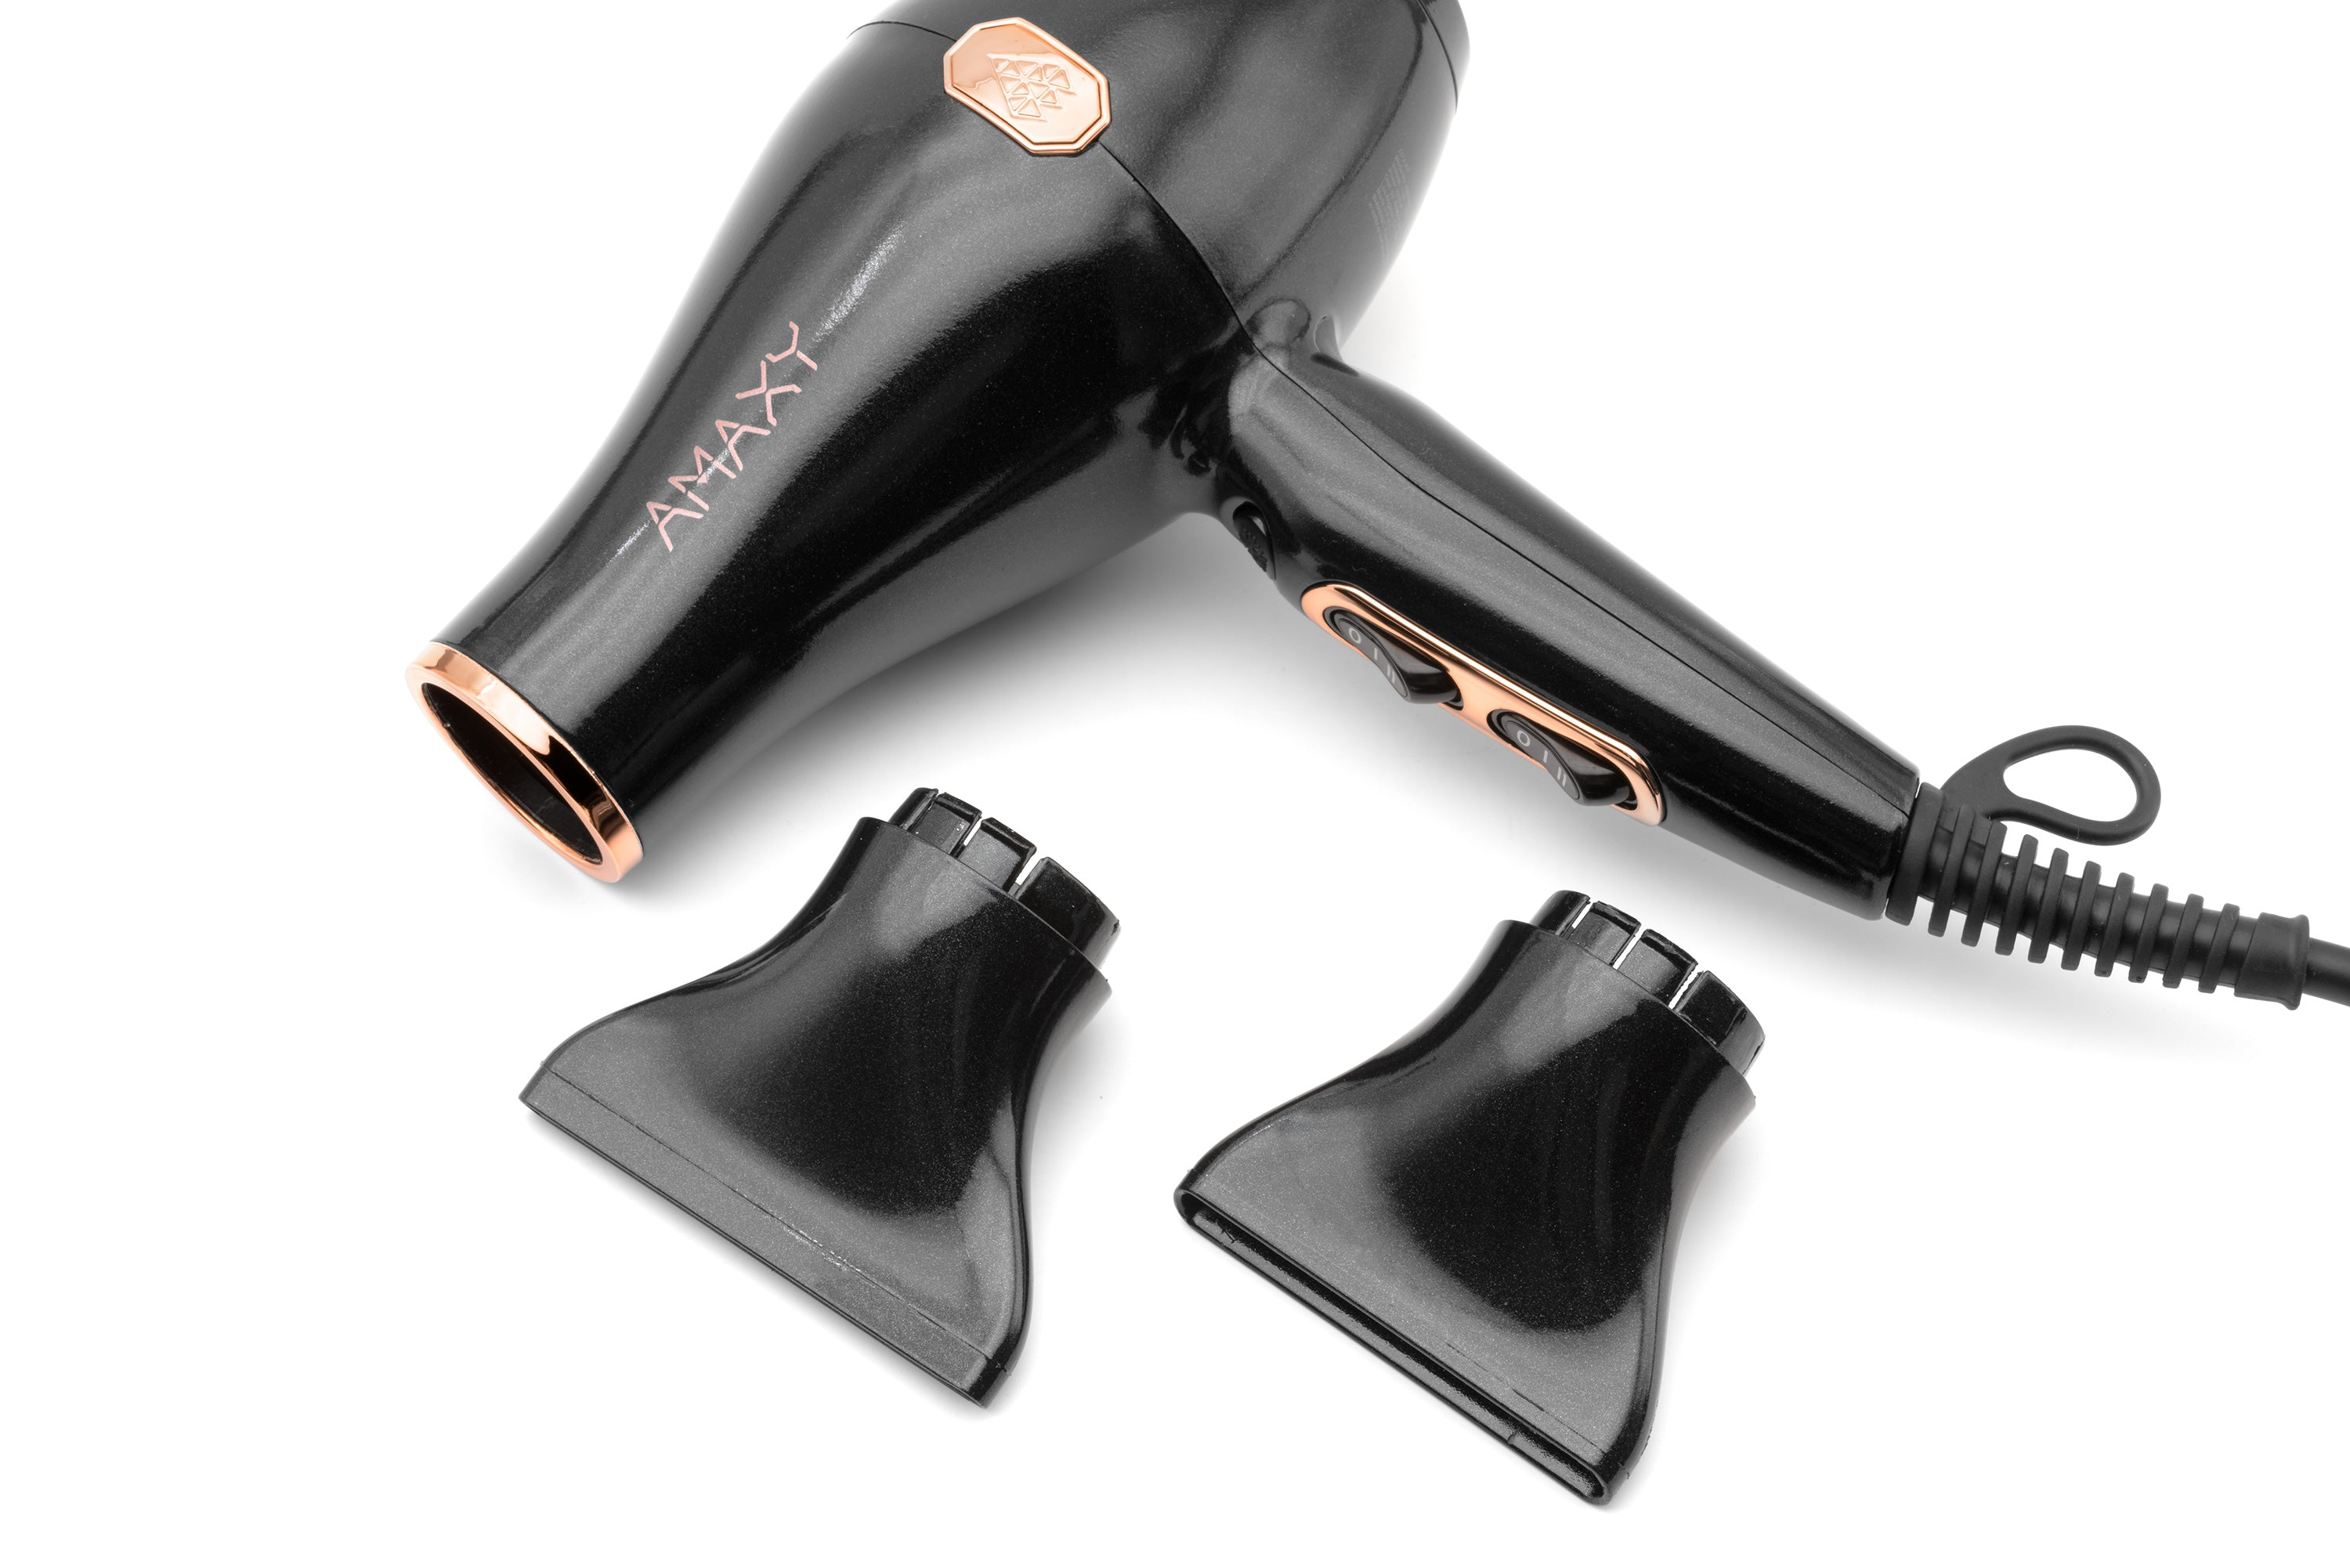 BOLD 2 Professional Hair Dryer - Featherweight & Supreme Power for Professional Use (2nd Generation)